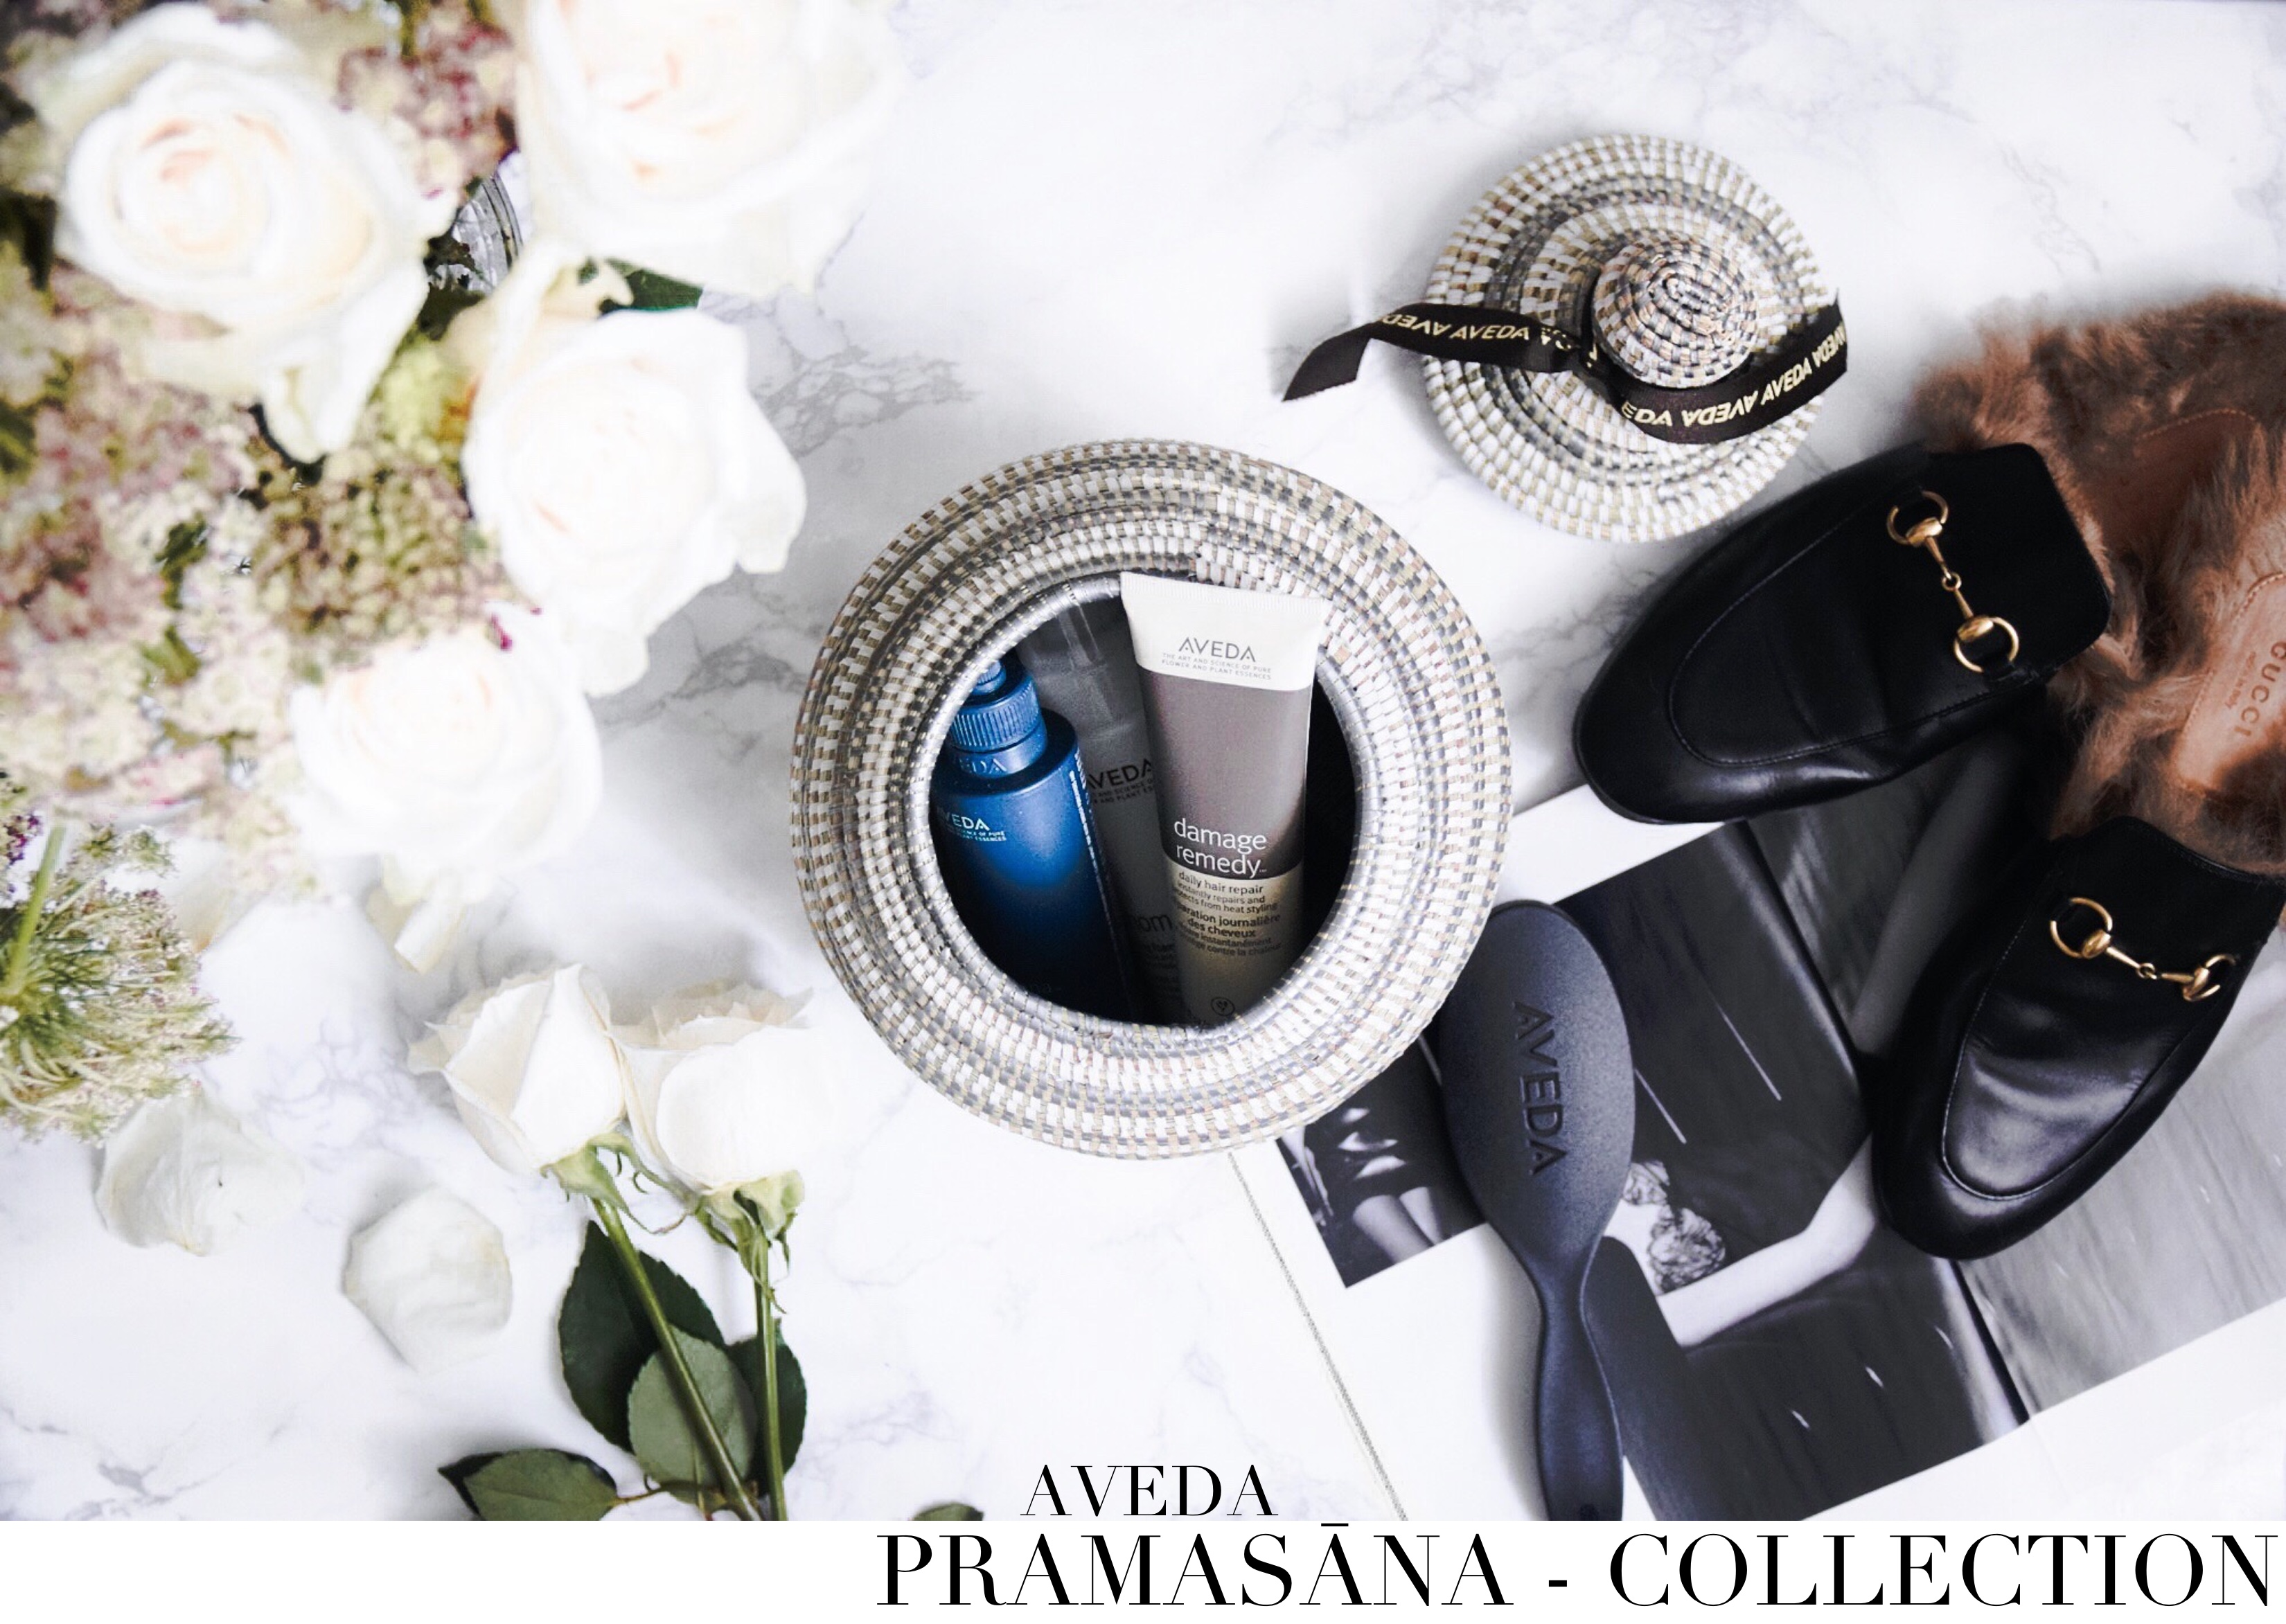 Aveda Pramasana Collection // The Three Step Process To Create A Foundation For Beautiful Hair // Aveda Pramasana Scalp Treatment // On My Vanity: To Style, With Love